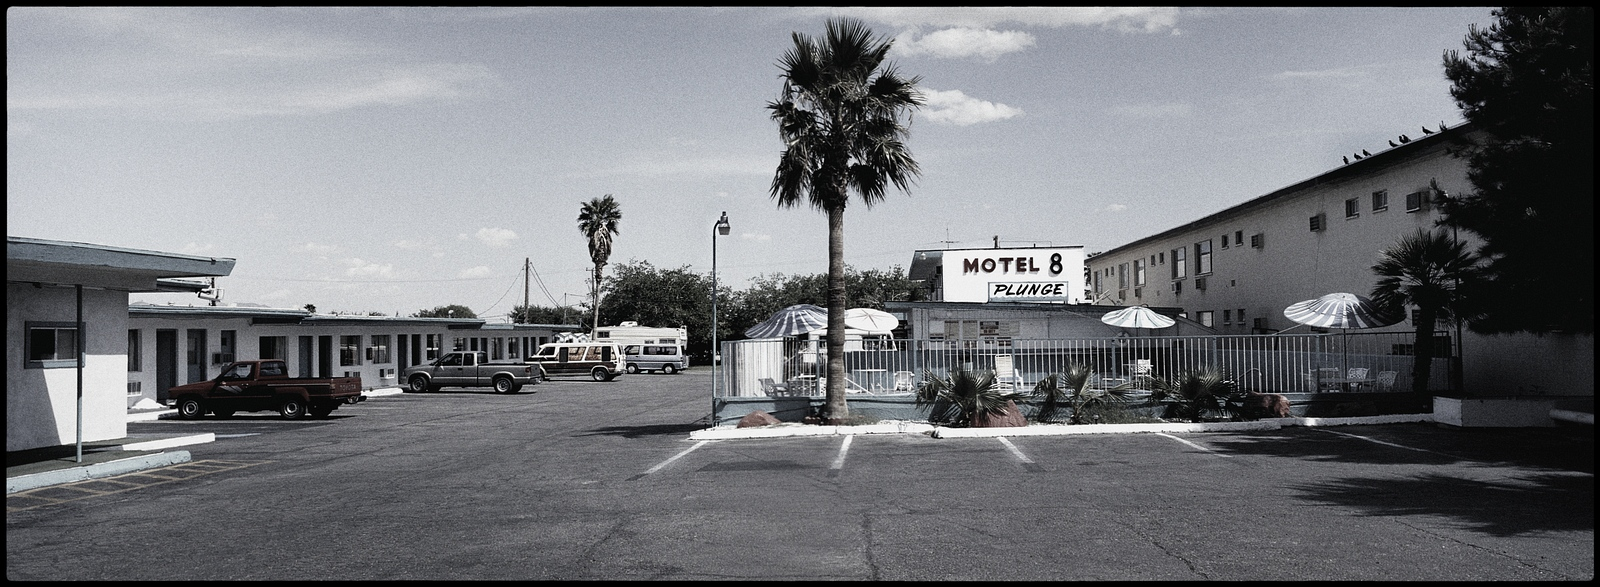 Motel 8, Las Vegas, NV, USA.All pictures are © Cyril Fakiri - No use without permission.